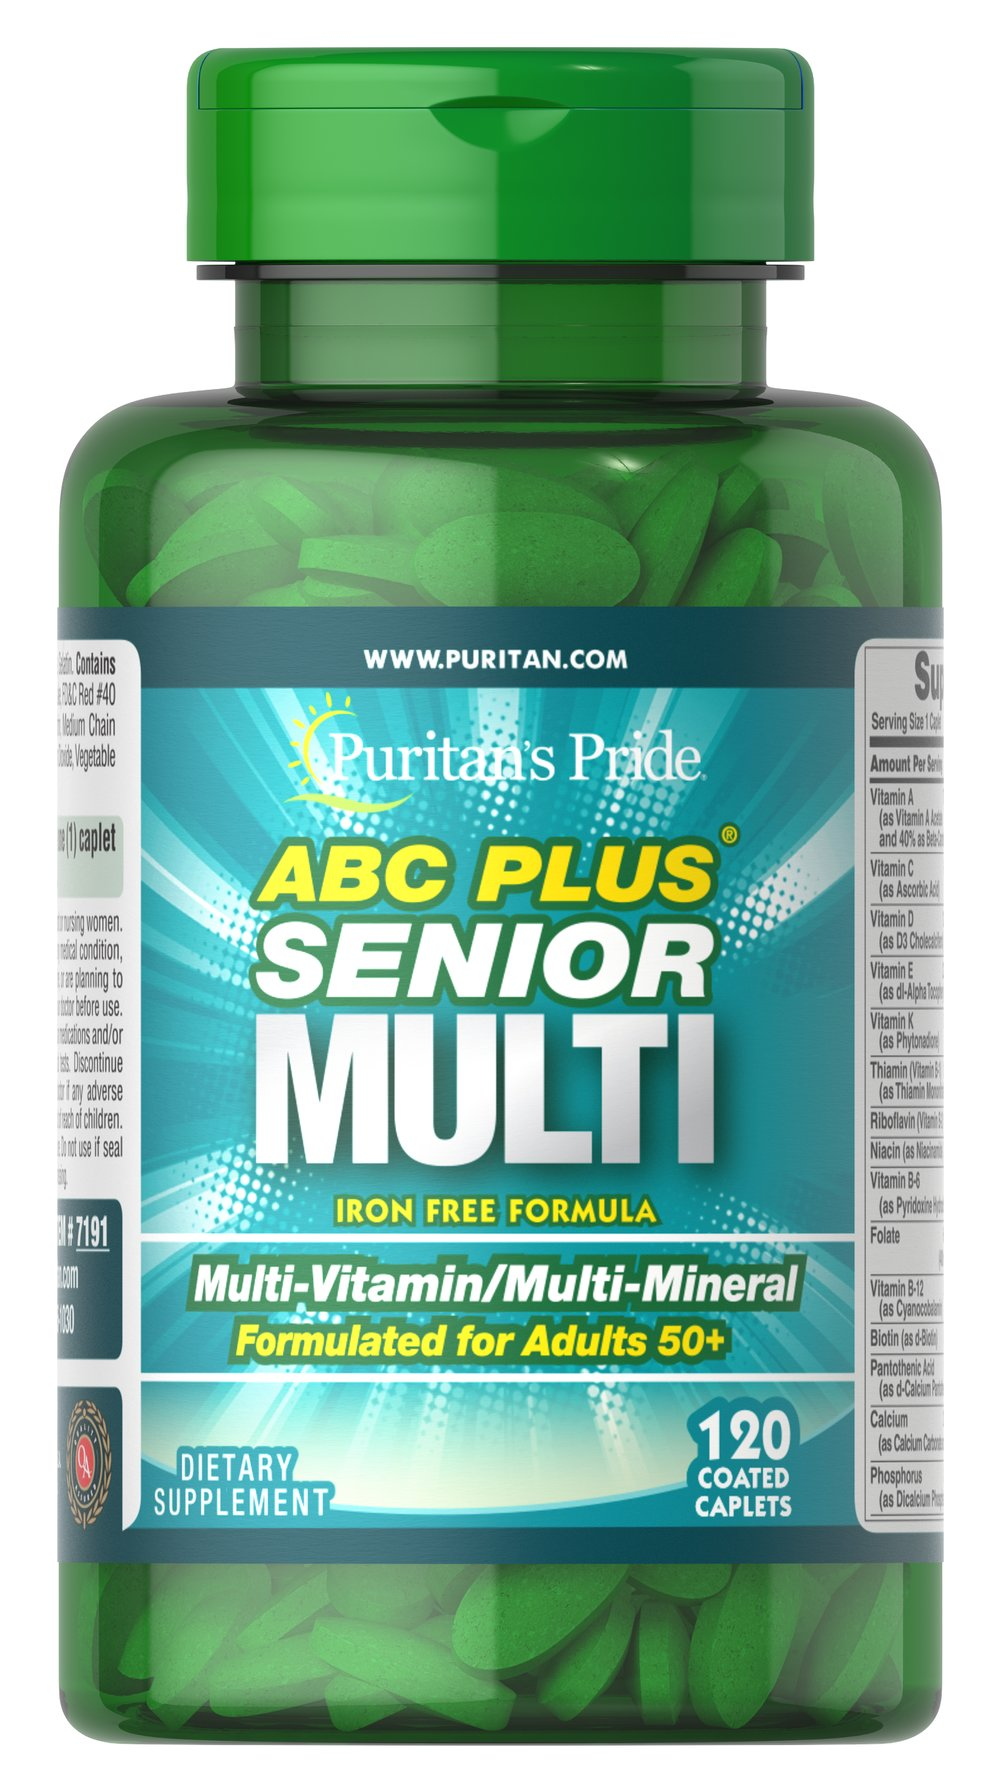 ABC Plus® Senior Multivitamin Multi-Mineral Formula <p>A special high-quality blend of vitamins and minerals formulated exclusively for adults 50 and over; delivers 100% or more daily values of Vitamins C, D, E, B-2, Niacin, Folic Acid and B-12. This is an iron-free, heart-healthy supplement. ** Compare and save!</p> 120 Caplets  $11.04